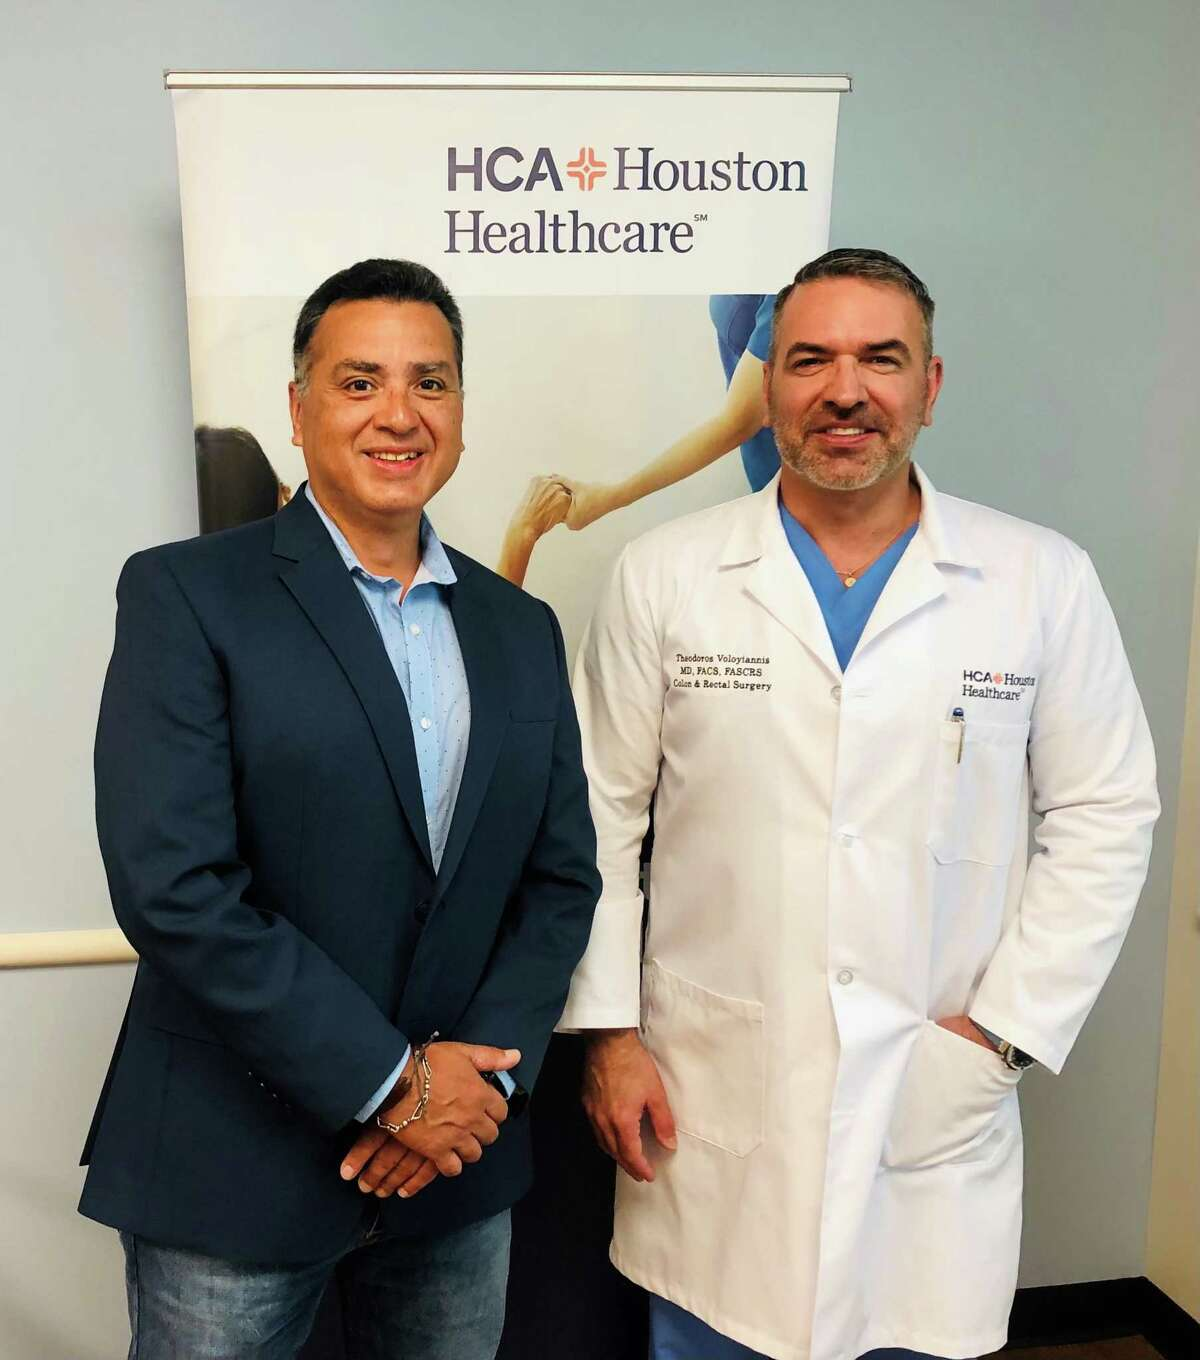 Surgeon Dr. Ted Voloyiannis, right, worked with a multidisciplinary team at HCA Houston Healthcare Clear Lake to develop a treatment plan for Rudy Gallardo following Gallardo's colon cancer diagnosis. Voloyiannis fears disruptions from the pandemic will mean more colon cancer cases go undiscovered until later stages of the disease.